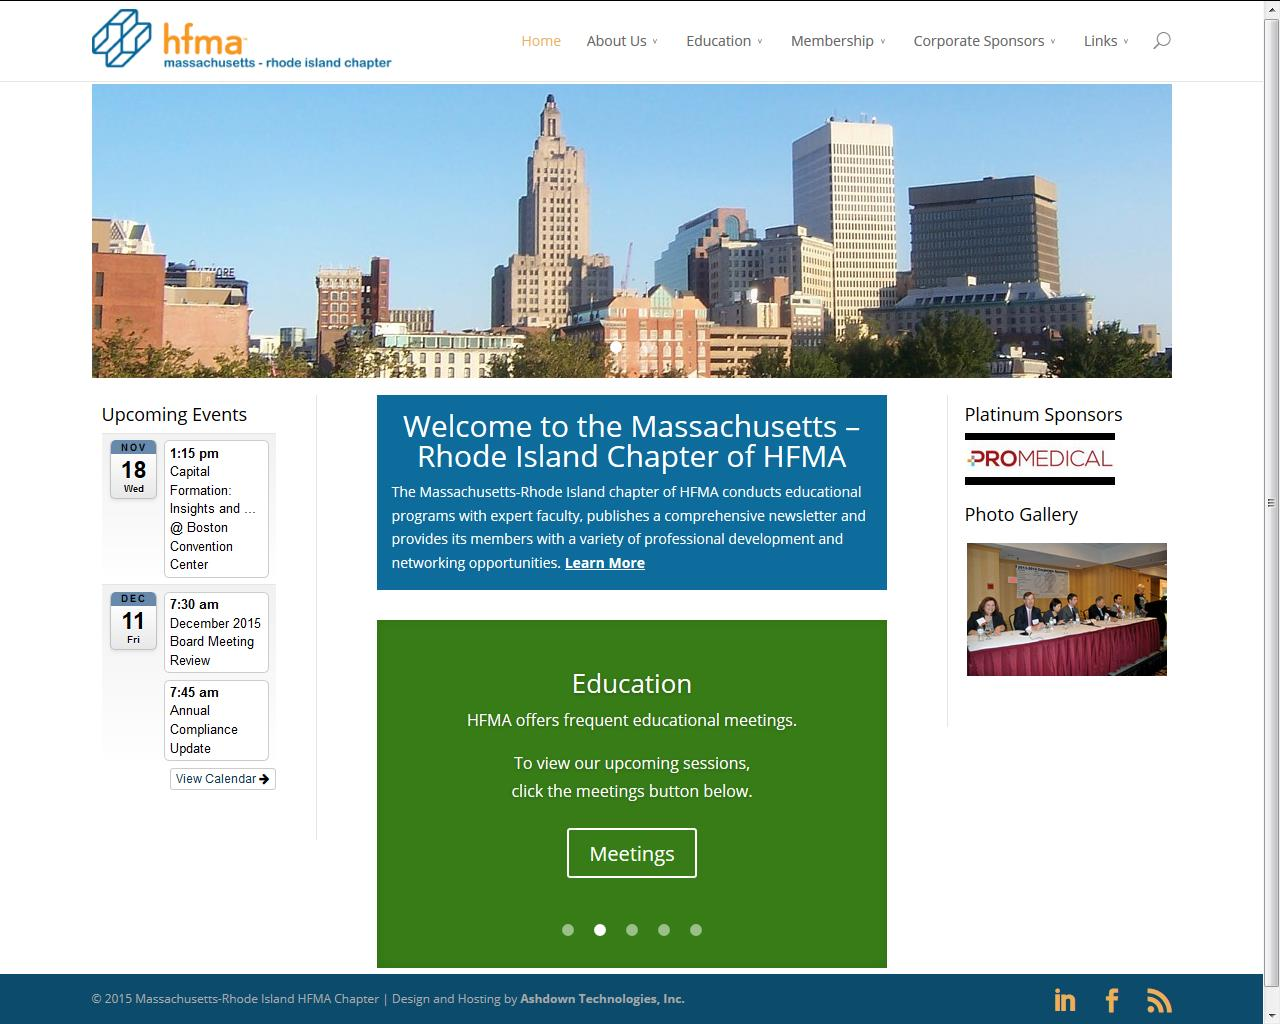 Massachusetts - Rhode Island Chapter of HFMA